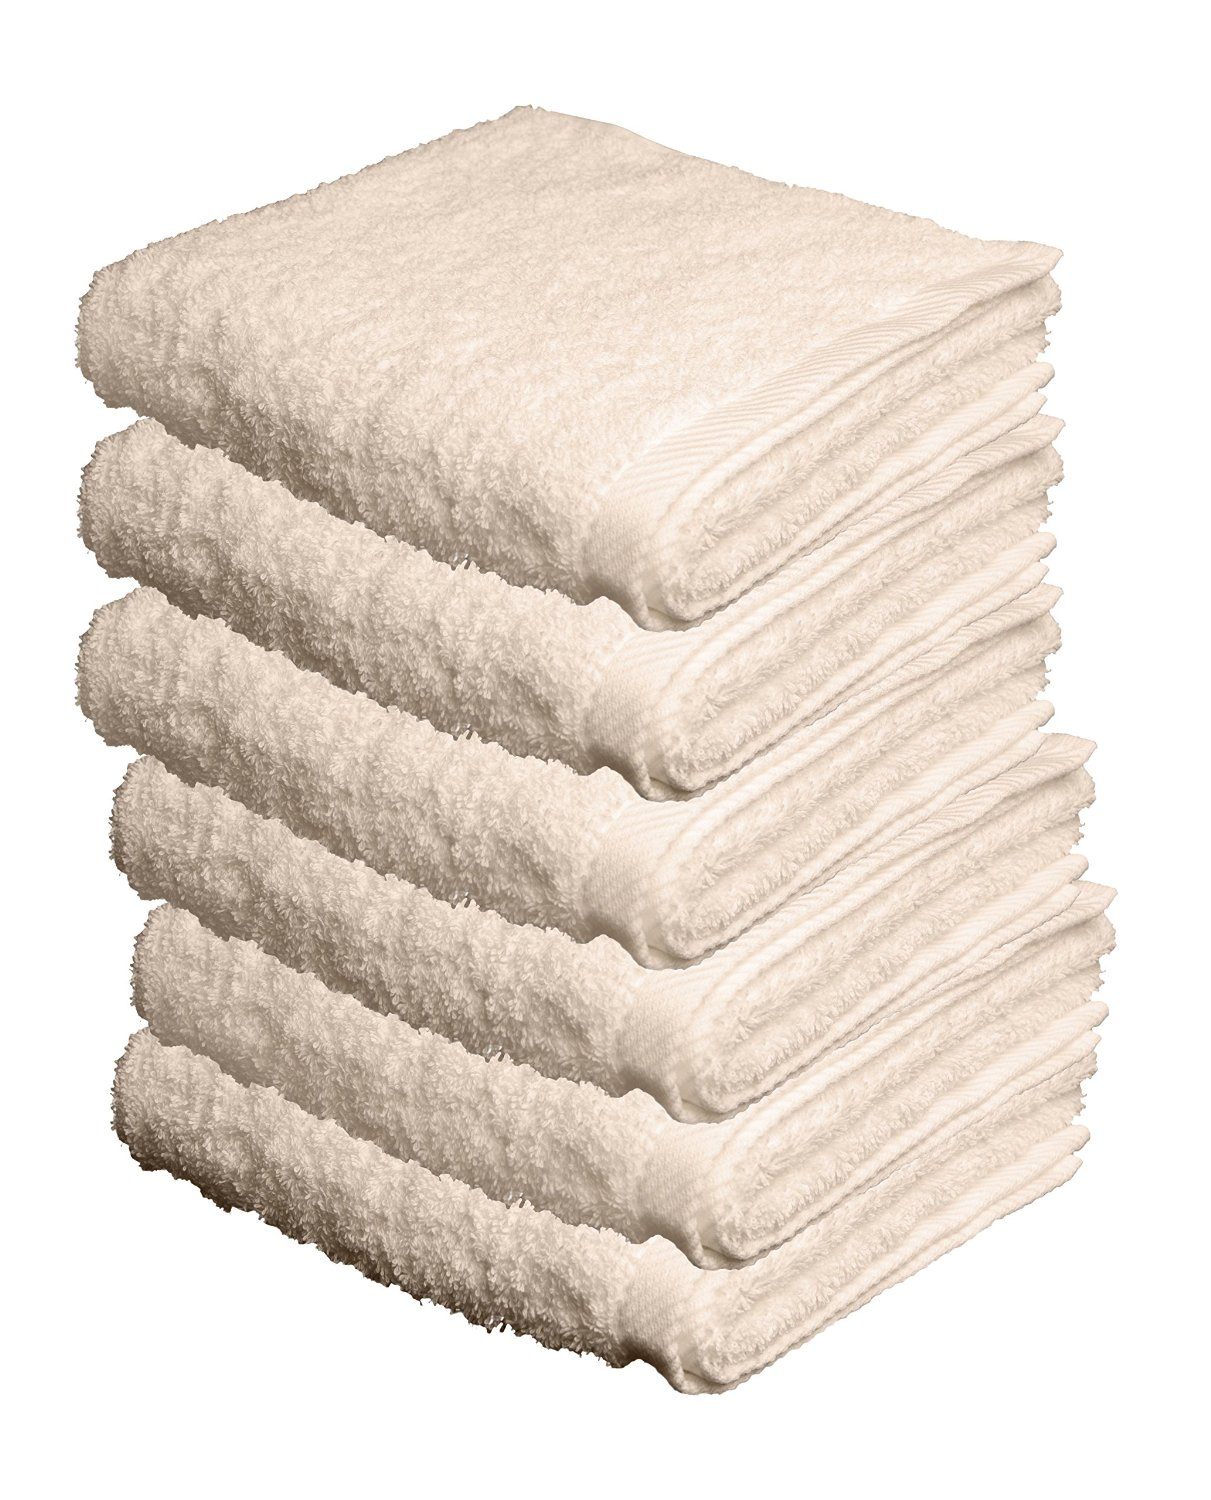 "BUNDLE OF 6, 27""x56"", Turkish Spa Bath Towel, 560 GSM. (NATURAL/CREME)"